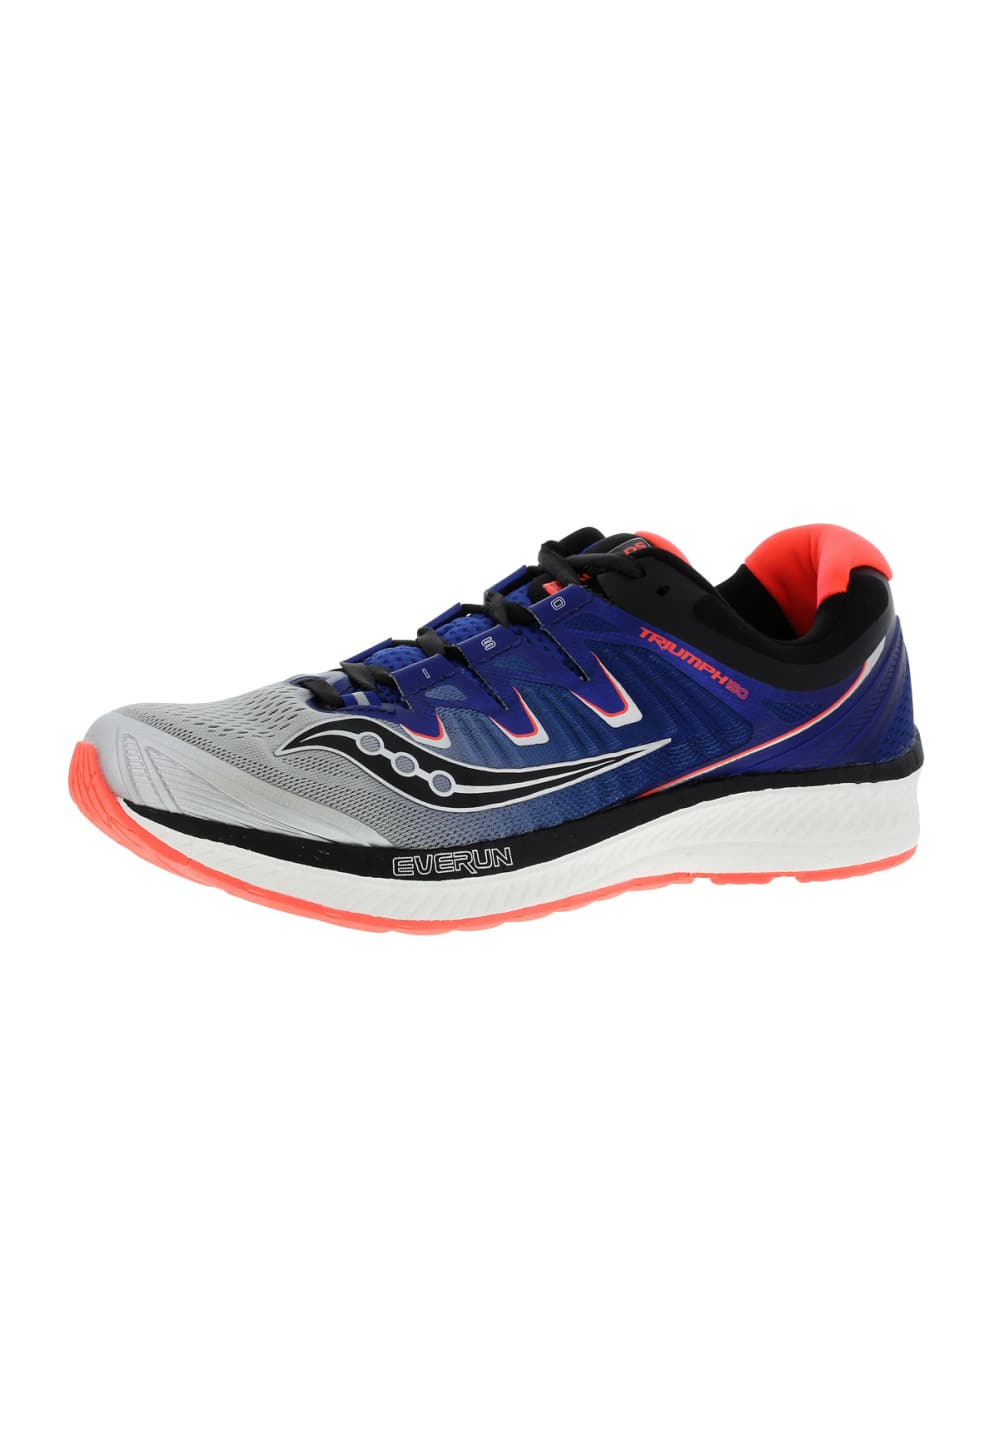 3a737842d7ee Next. -60%. Saucony. Triumph Iso 4 - Running shoes for Men